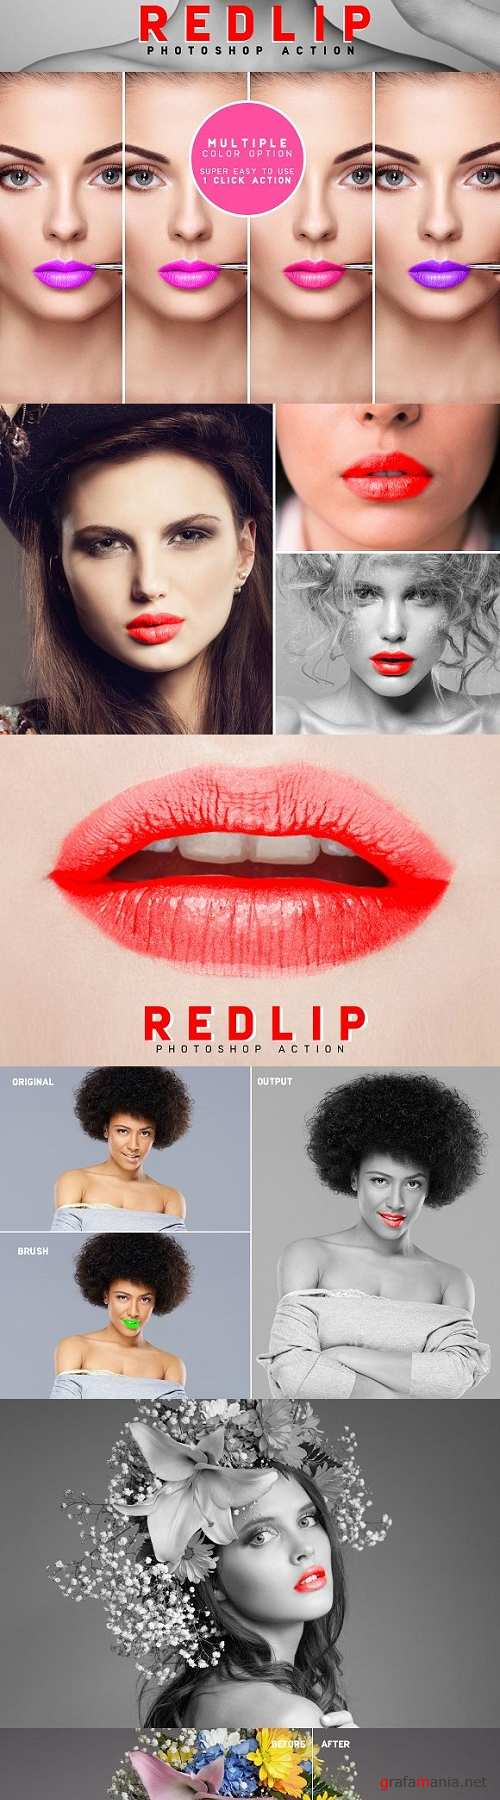 RedLip Photoshop Action 2166420